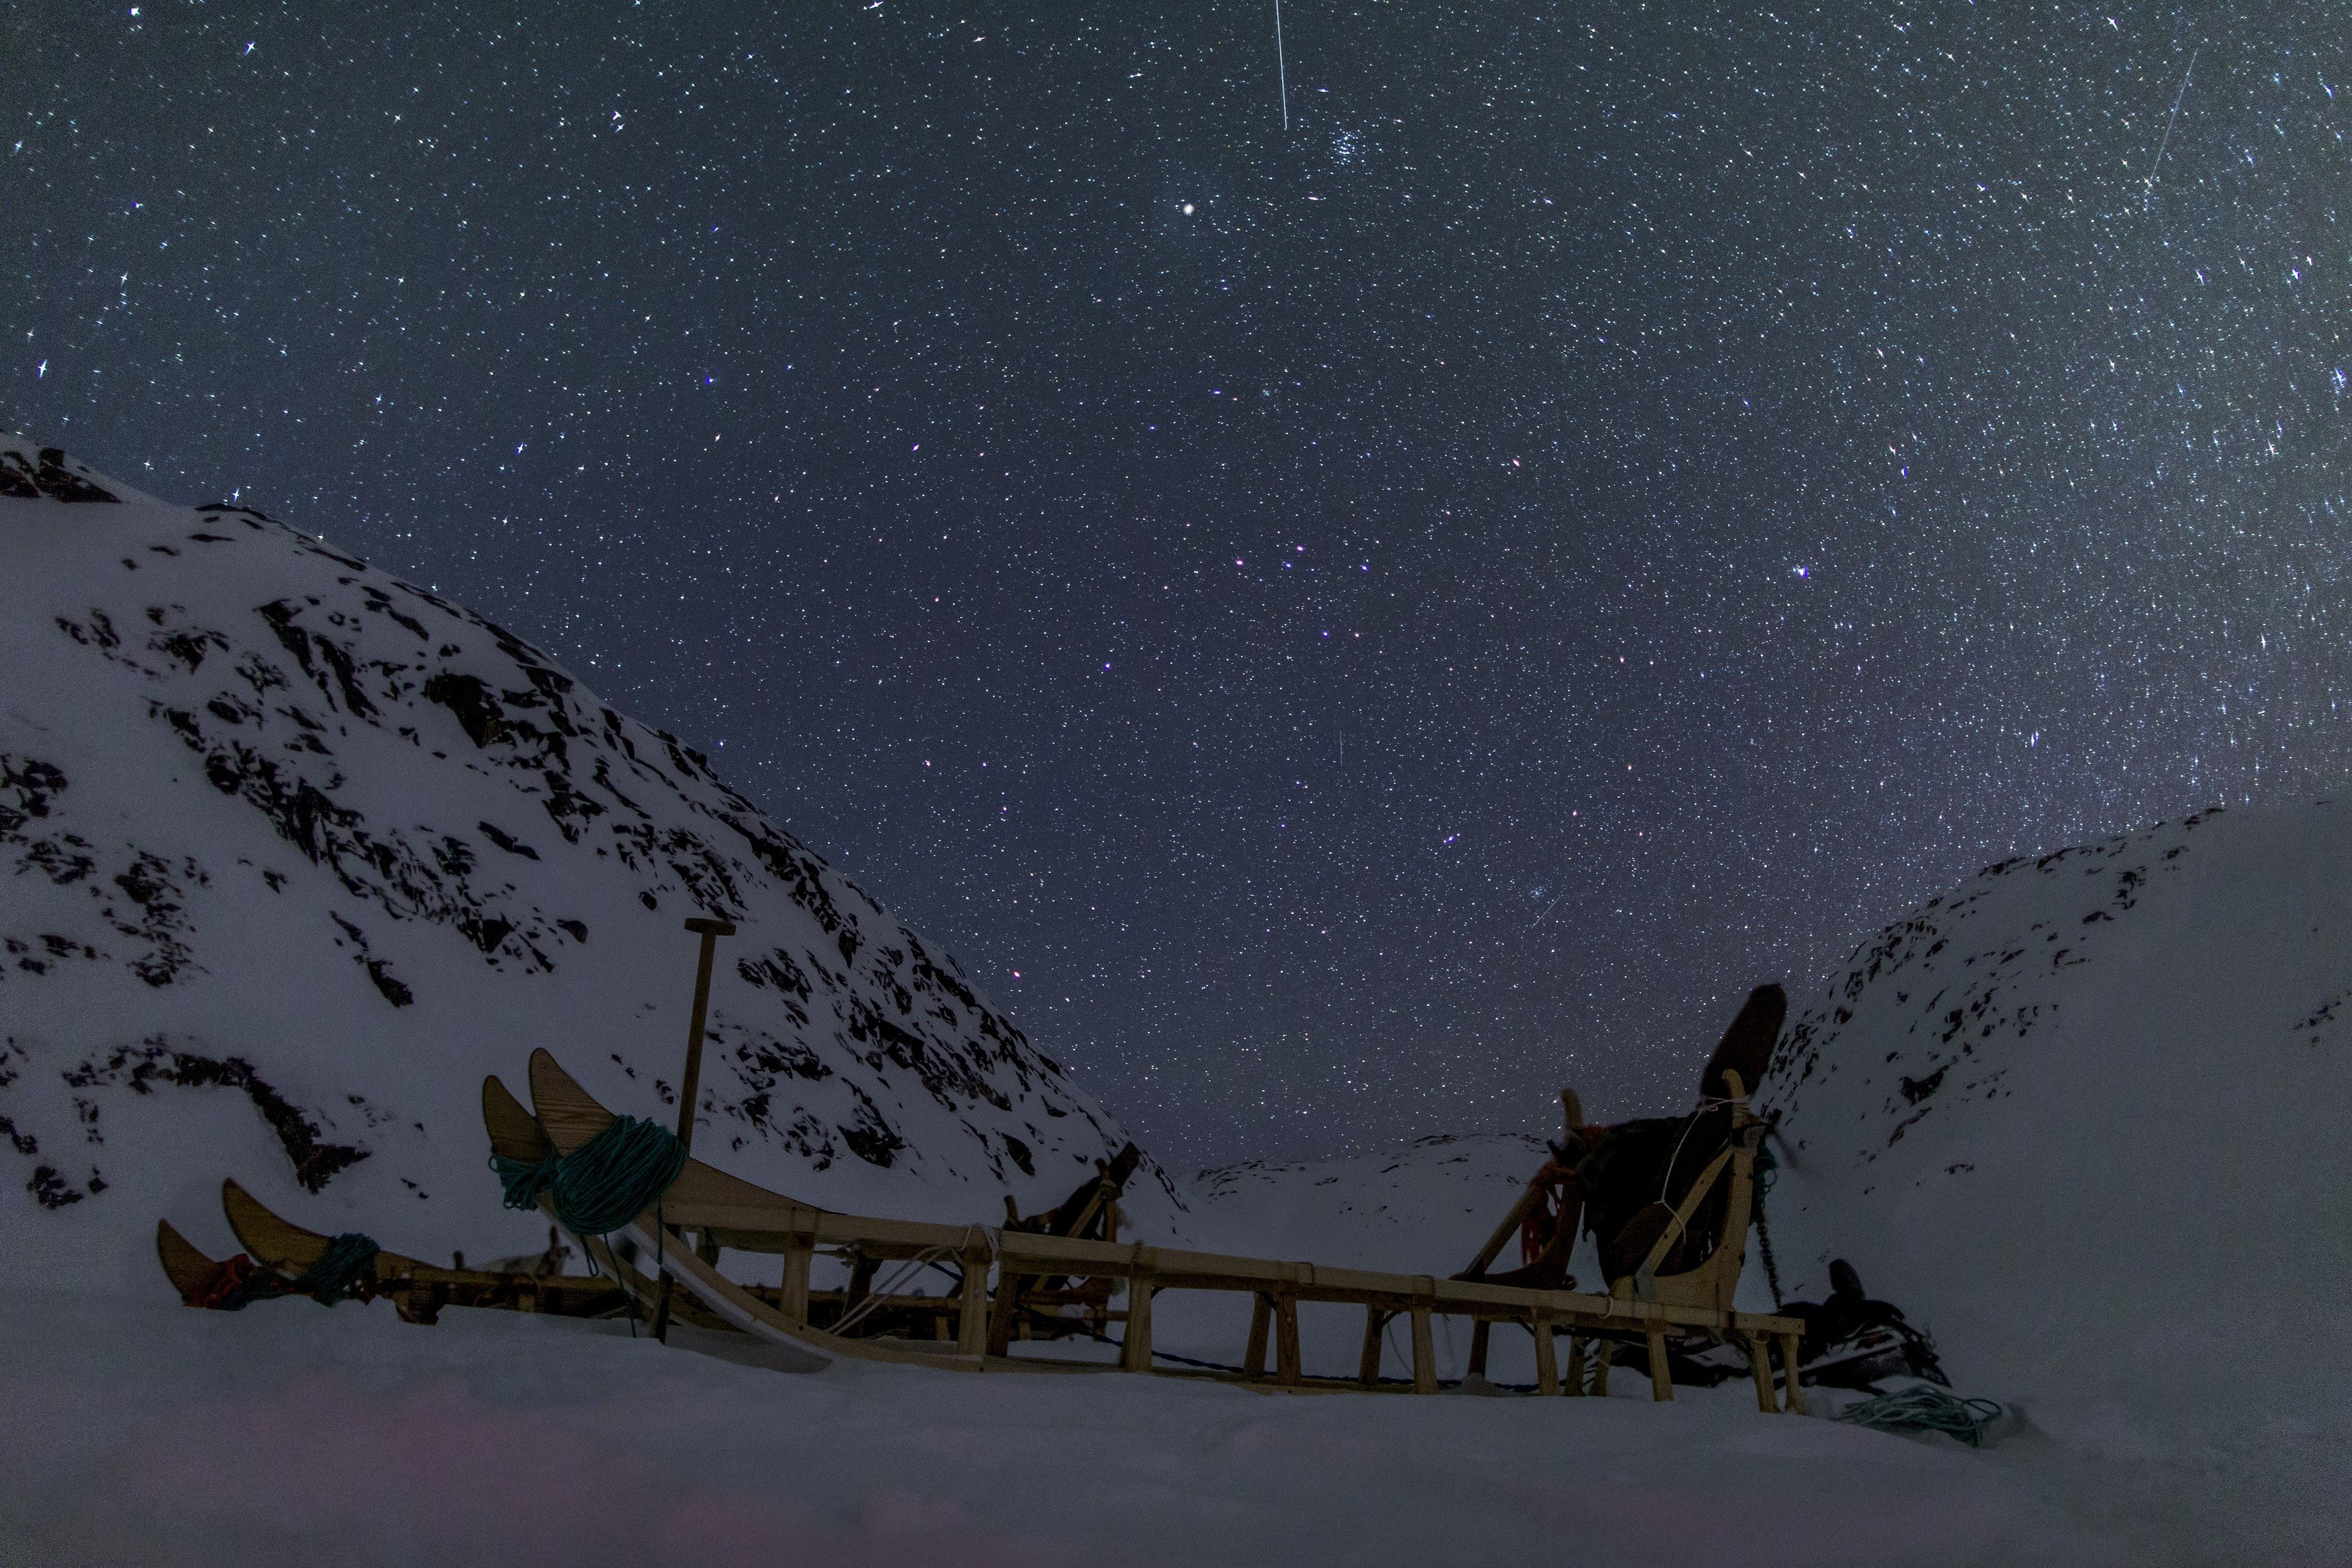 Trip Ideas outdoor sky snow night weather Winter atmosphere of earth astronomy star screenshot astronomical object day